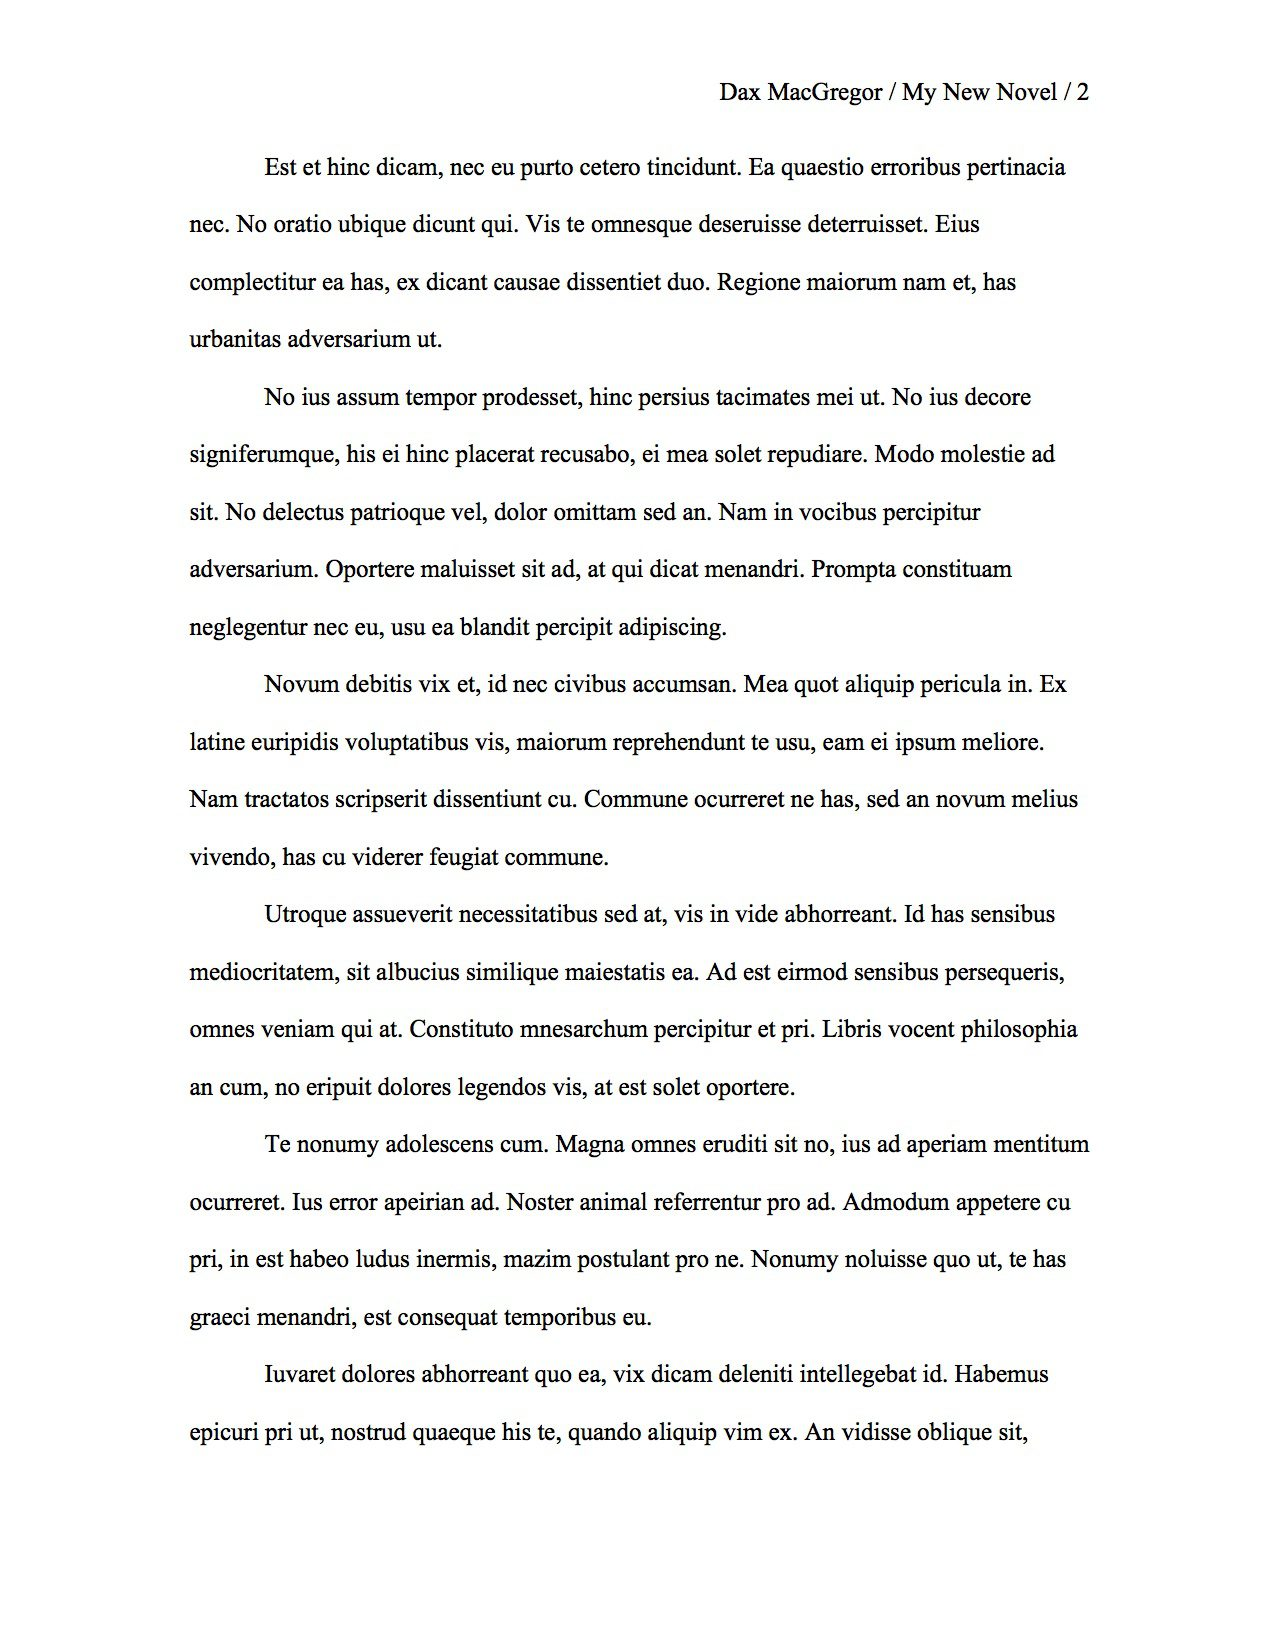 https://firstmanuscript.com/wp-content/uploads/2014/09/Sample-Manuscript-Content-Page1.jpeg